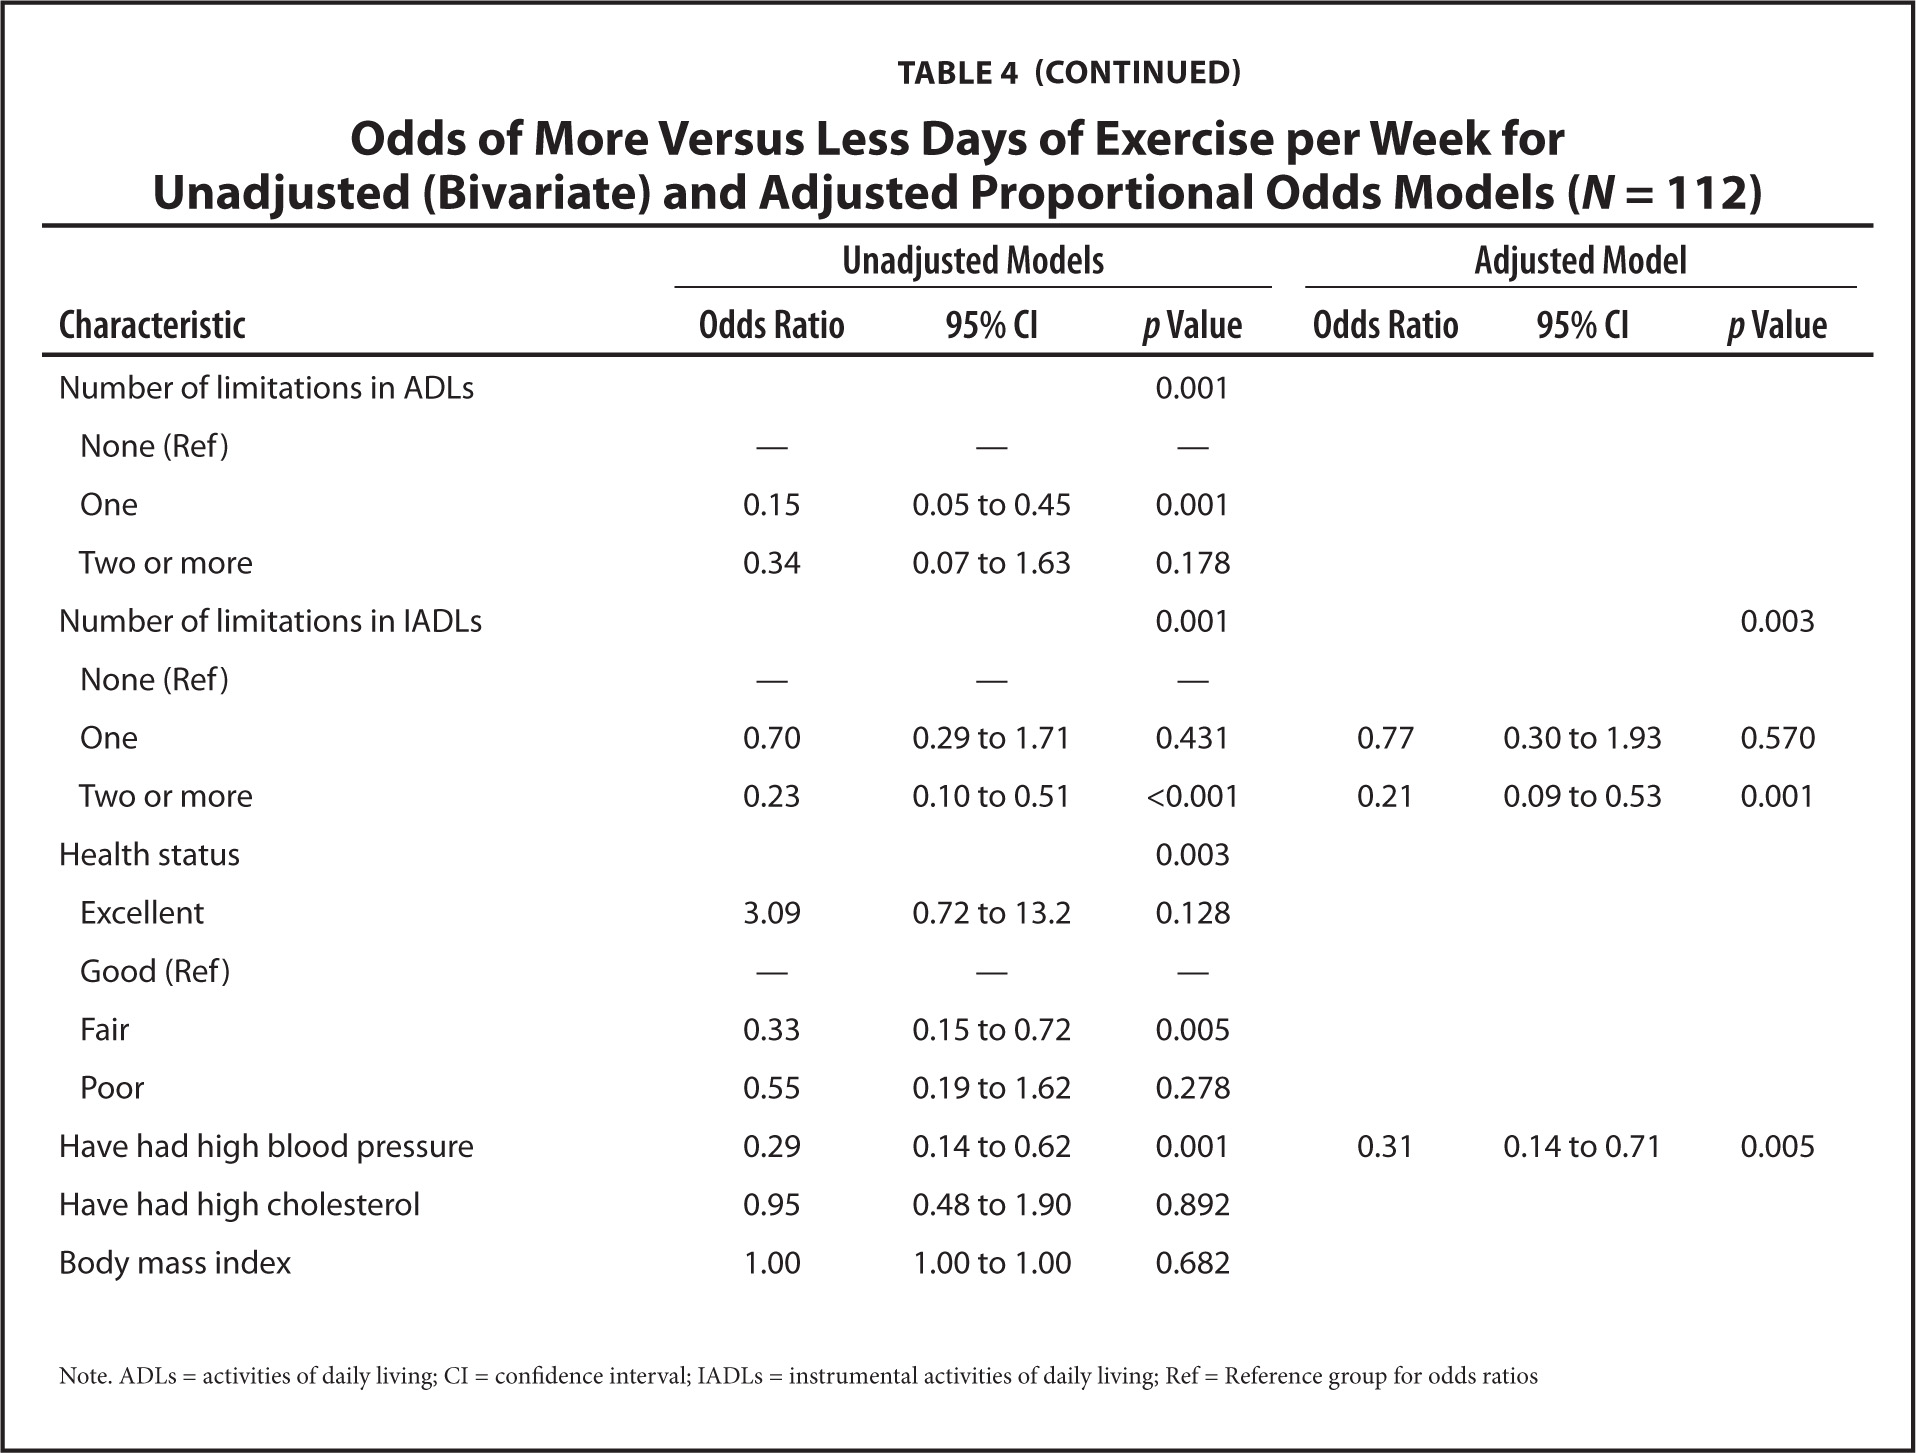 Odds of More Versus Less Days of Exercise per Week for Unadjusted (bivariate) and Adjusted Proportional Odds Models (N = 112)